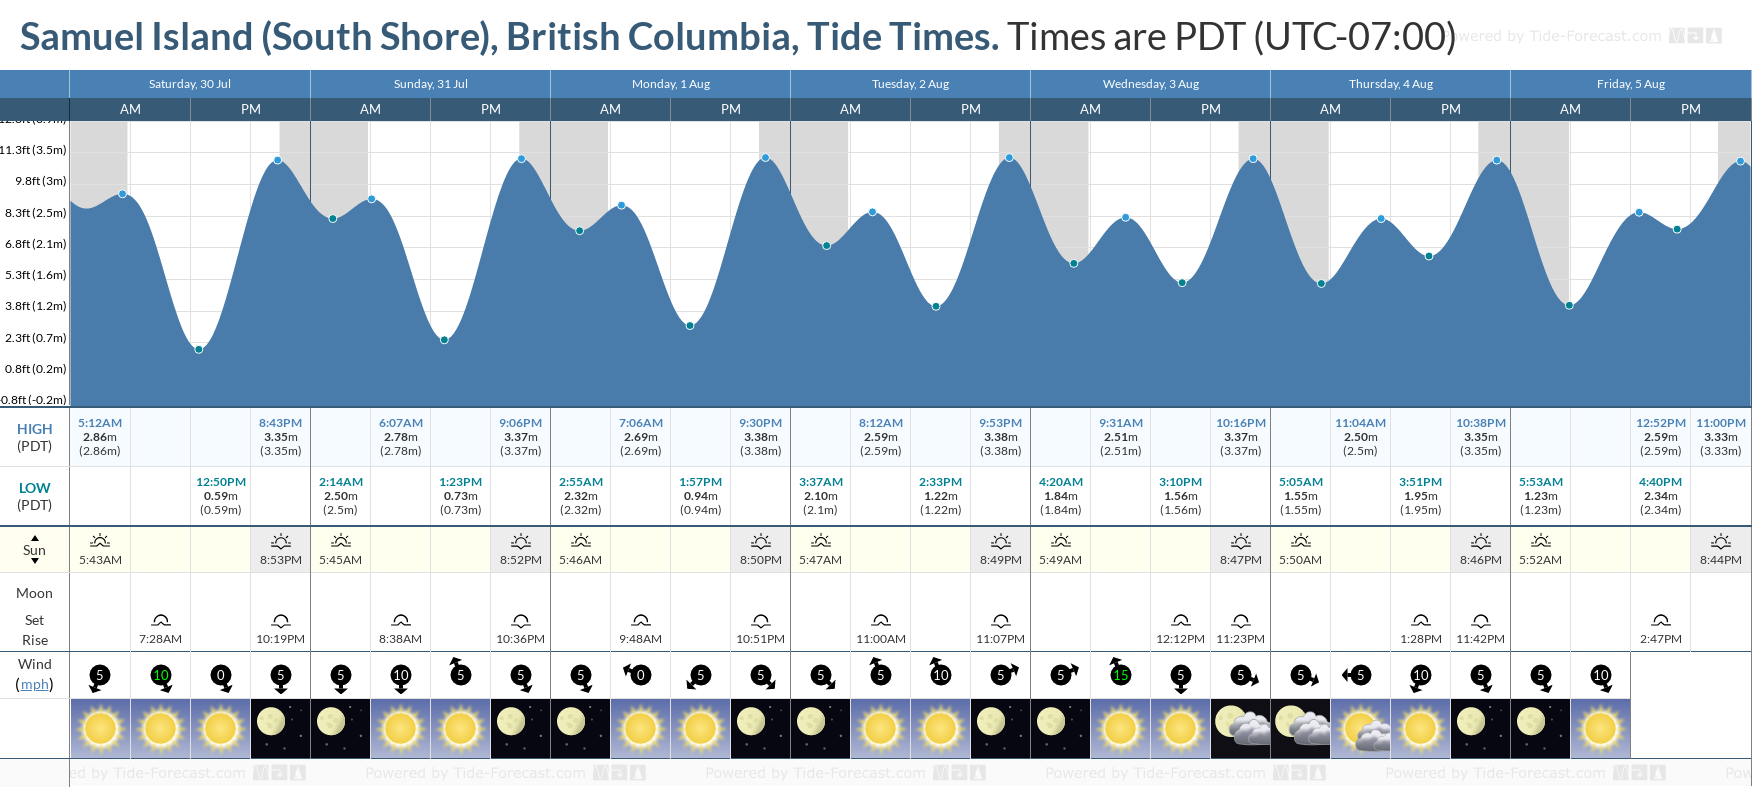 Samuel Island (South Shore), British Columbia Tide Chart including high and low tide tide times for the next 7 days